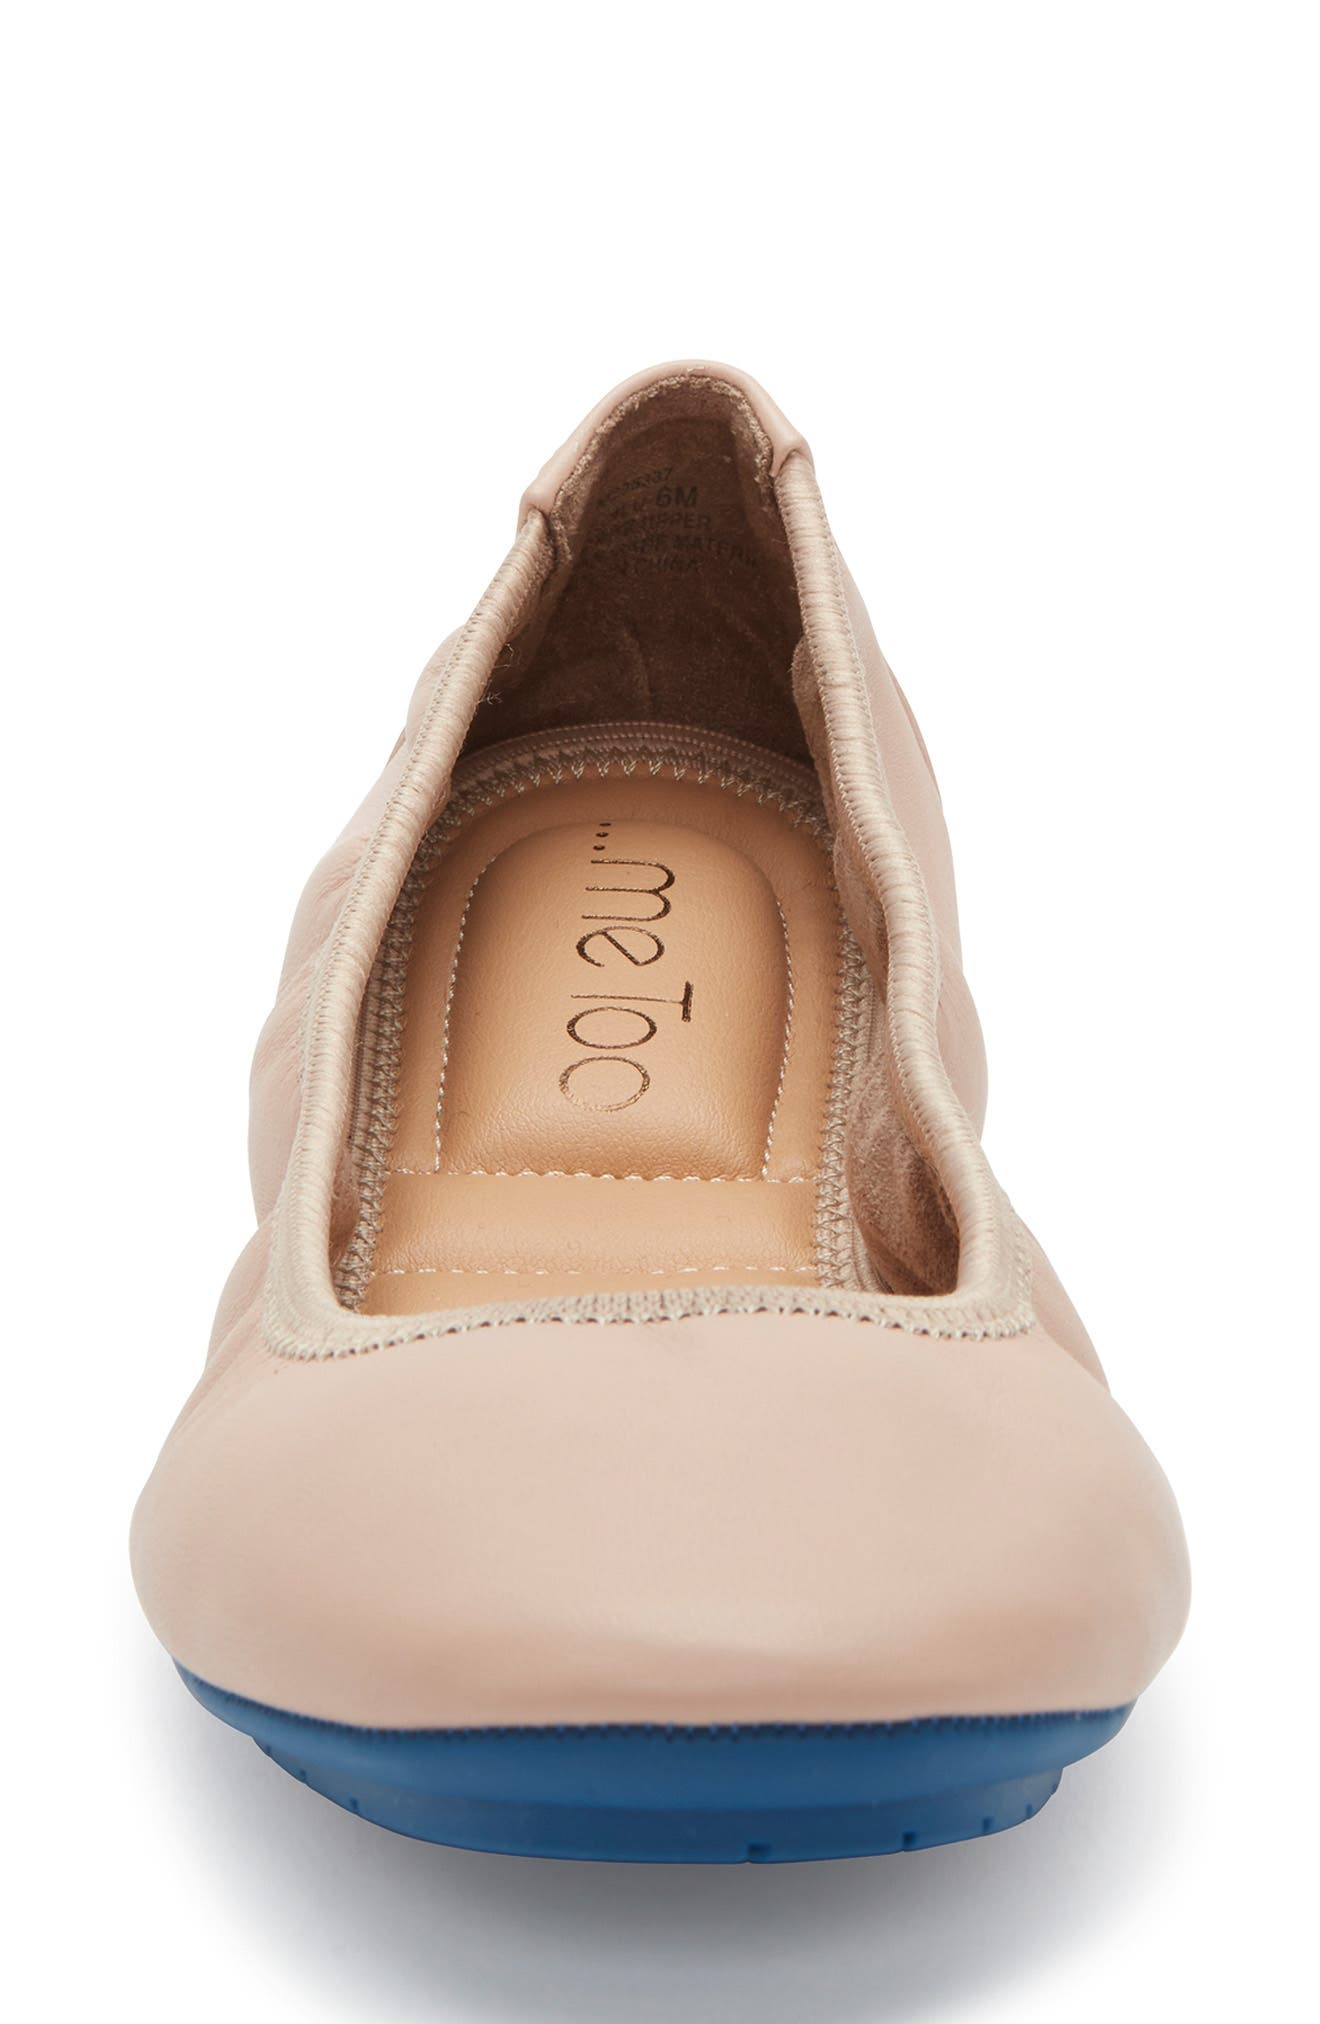 ME TOO, 'Tru Blu' Flat, Alternate thumbnail 4, color, LIGHT NUDE LEATHER